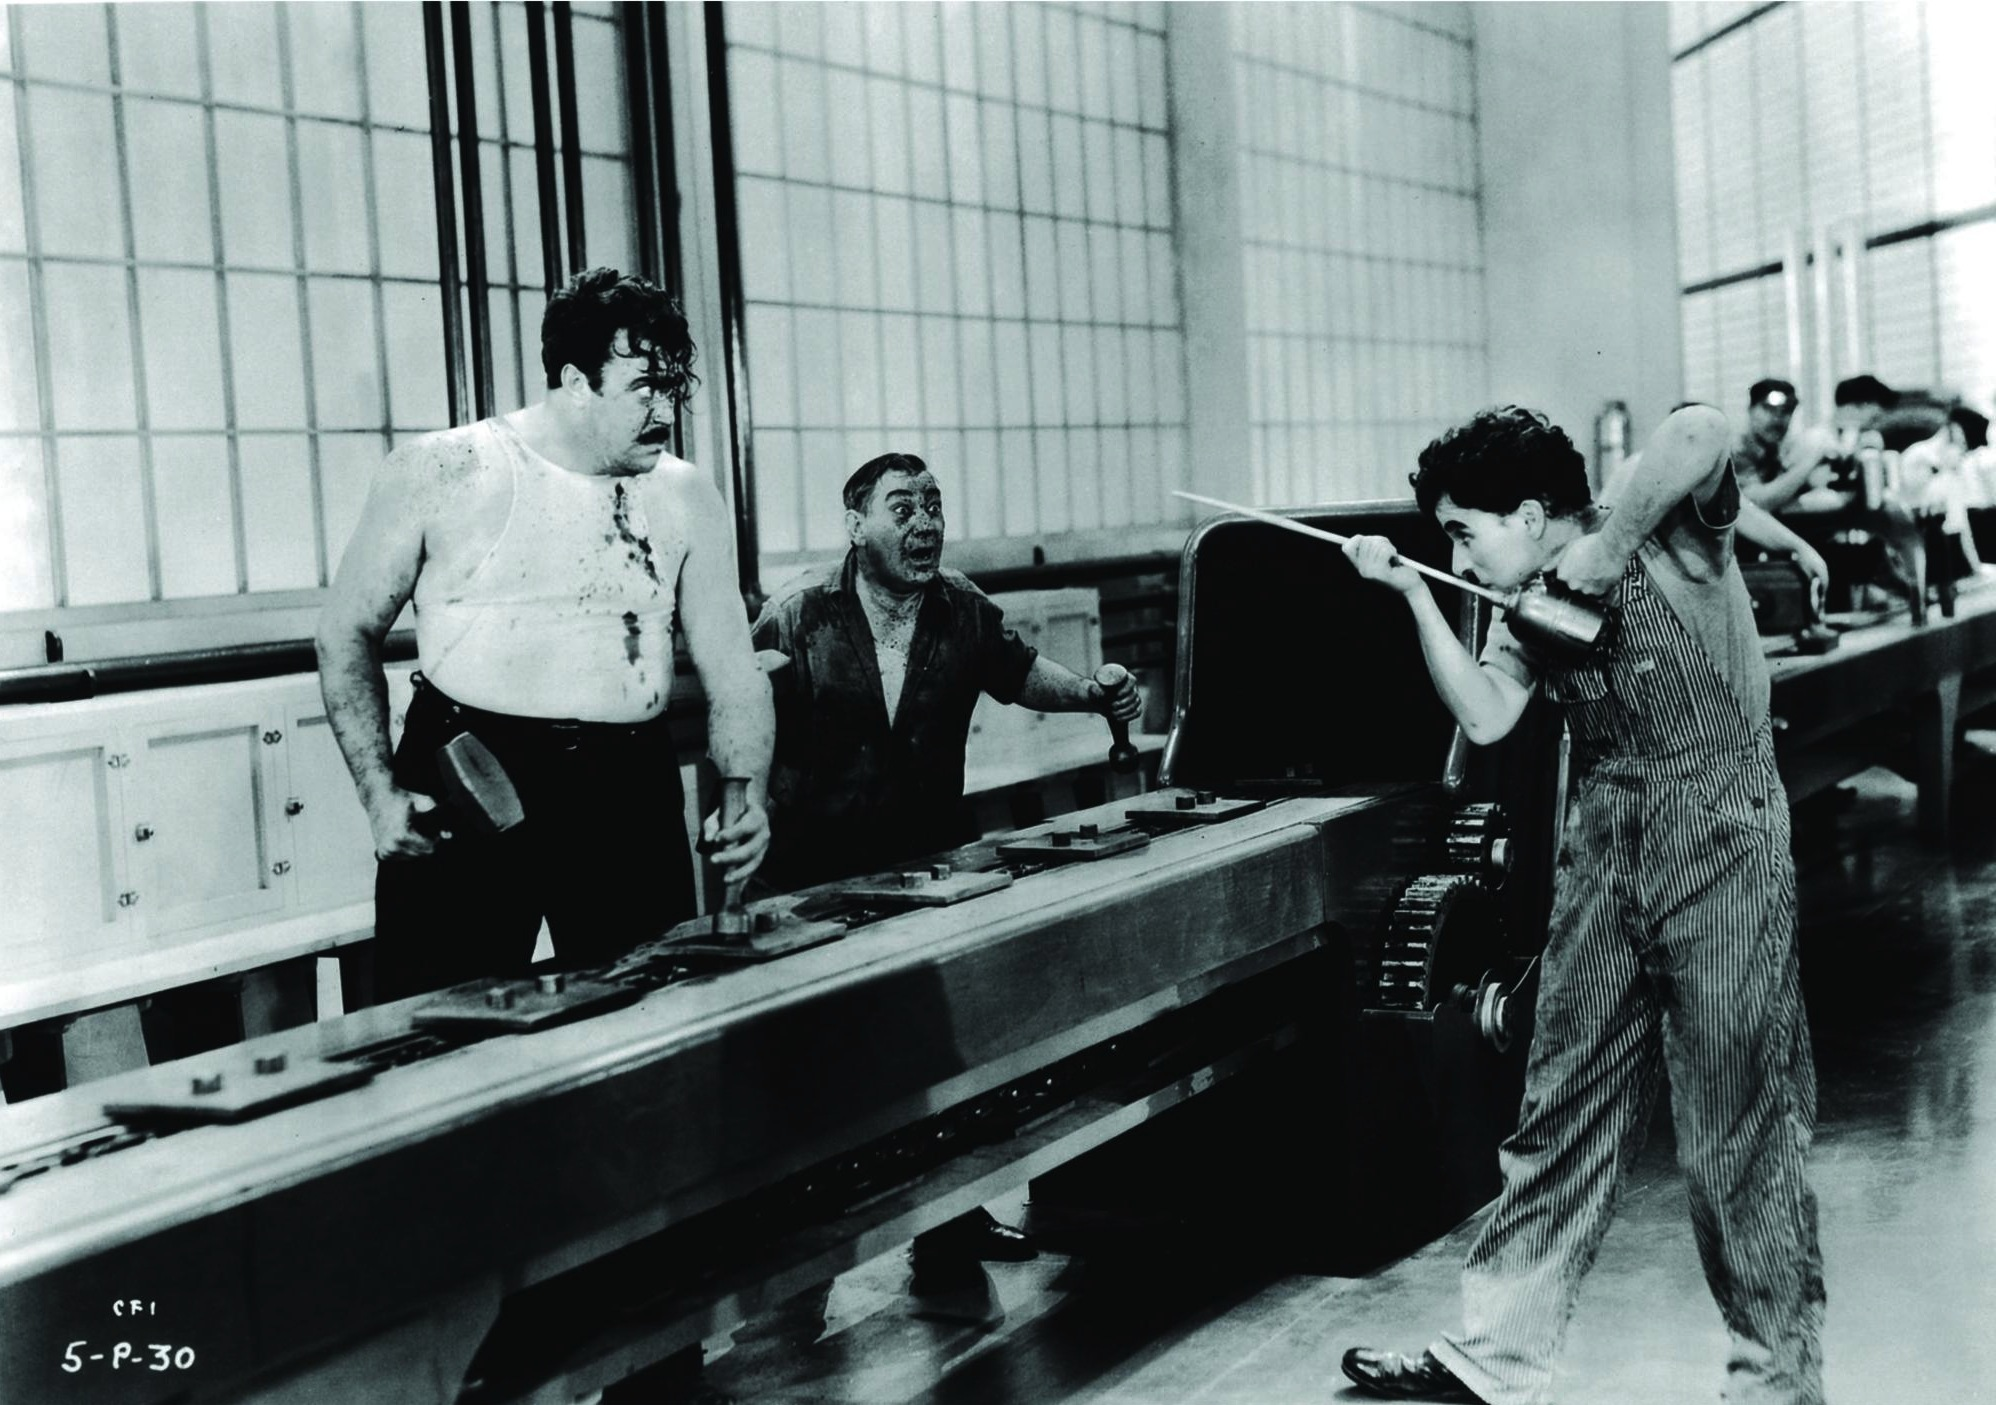 Charles Chaplin, Heinie Conklin, and Tiny Sandford in Modern Times (1936)